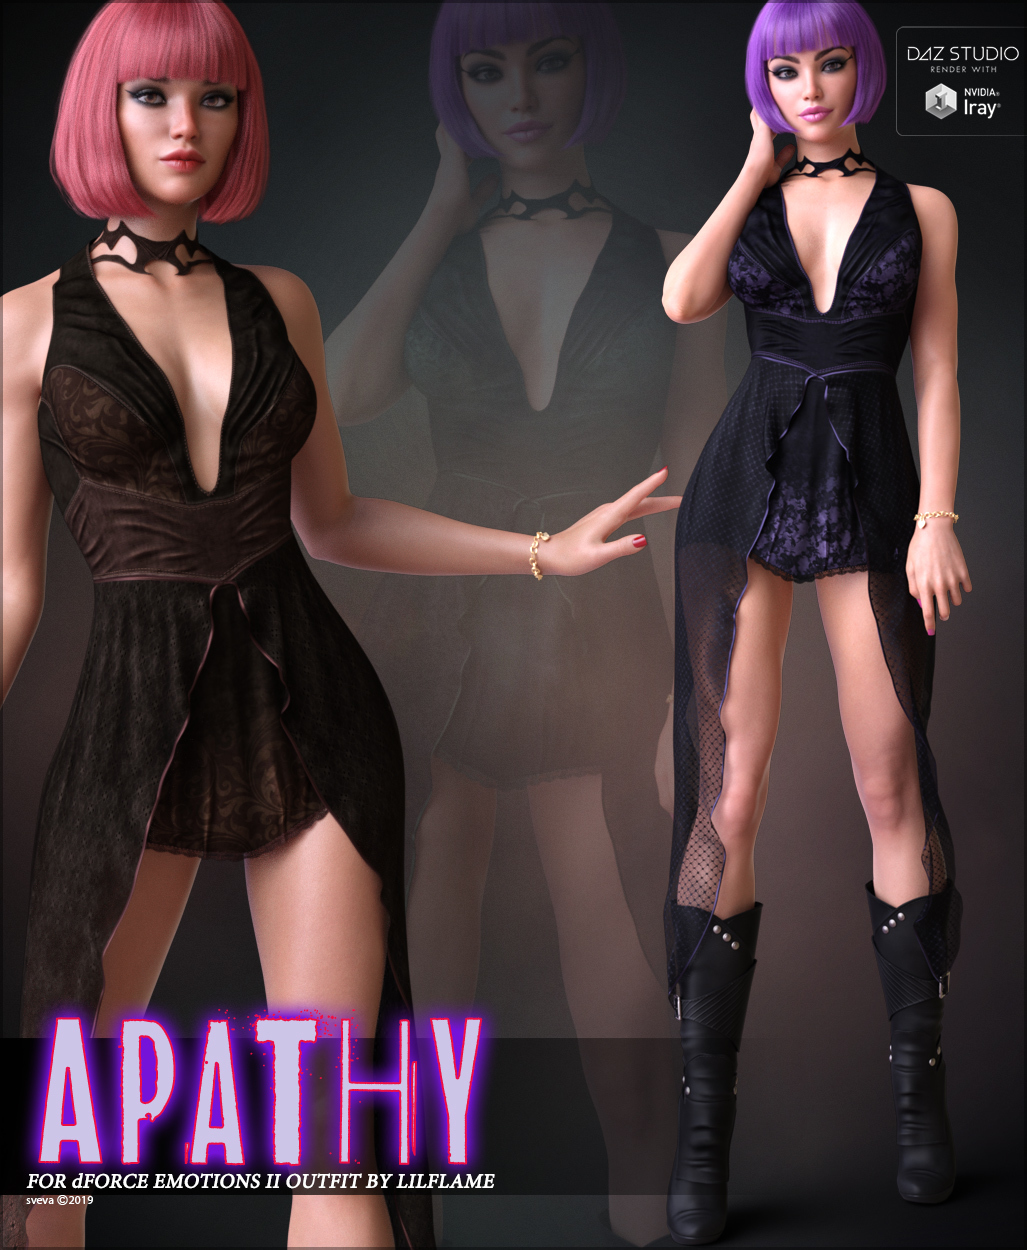 Apathy for dForce Emotions Outfit II G8F by Sveva